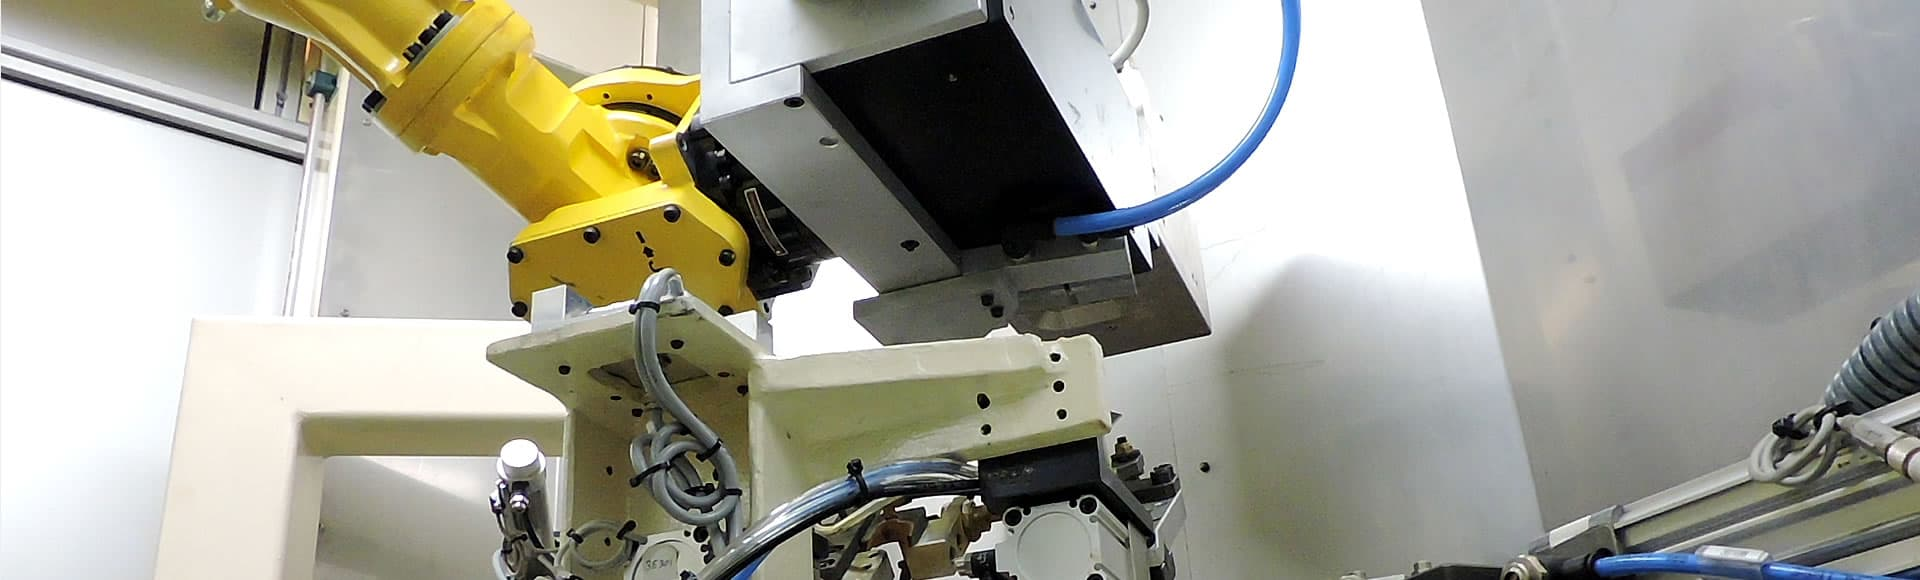 Lantec, design and manufacture of special machines that incorporate lasers.